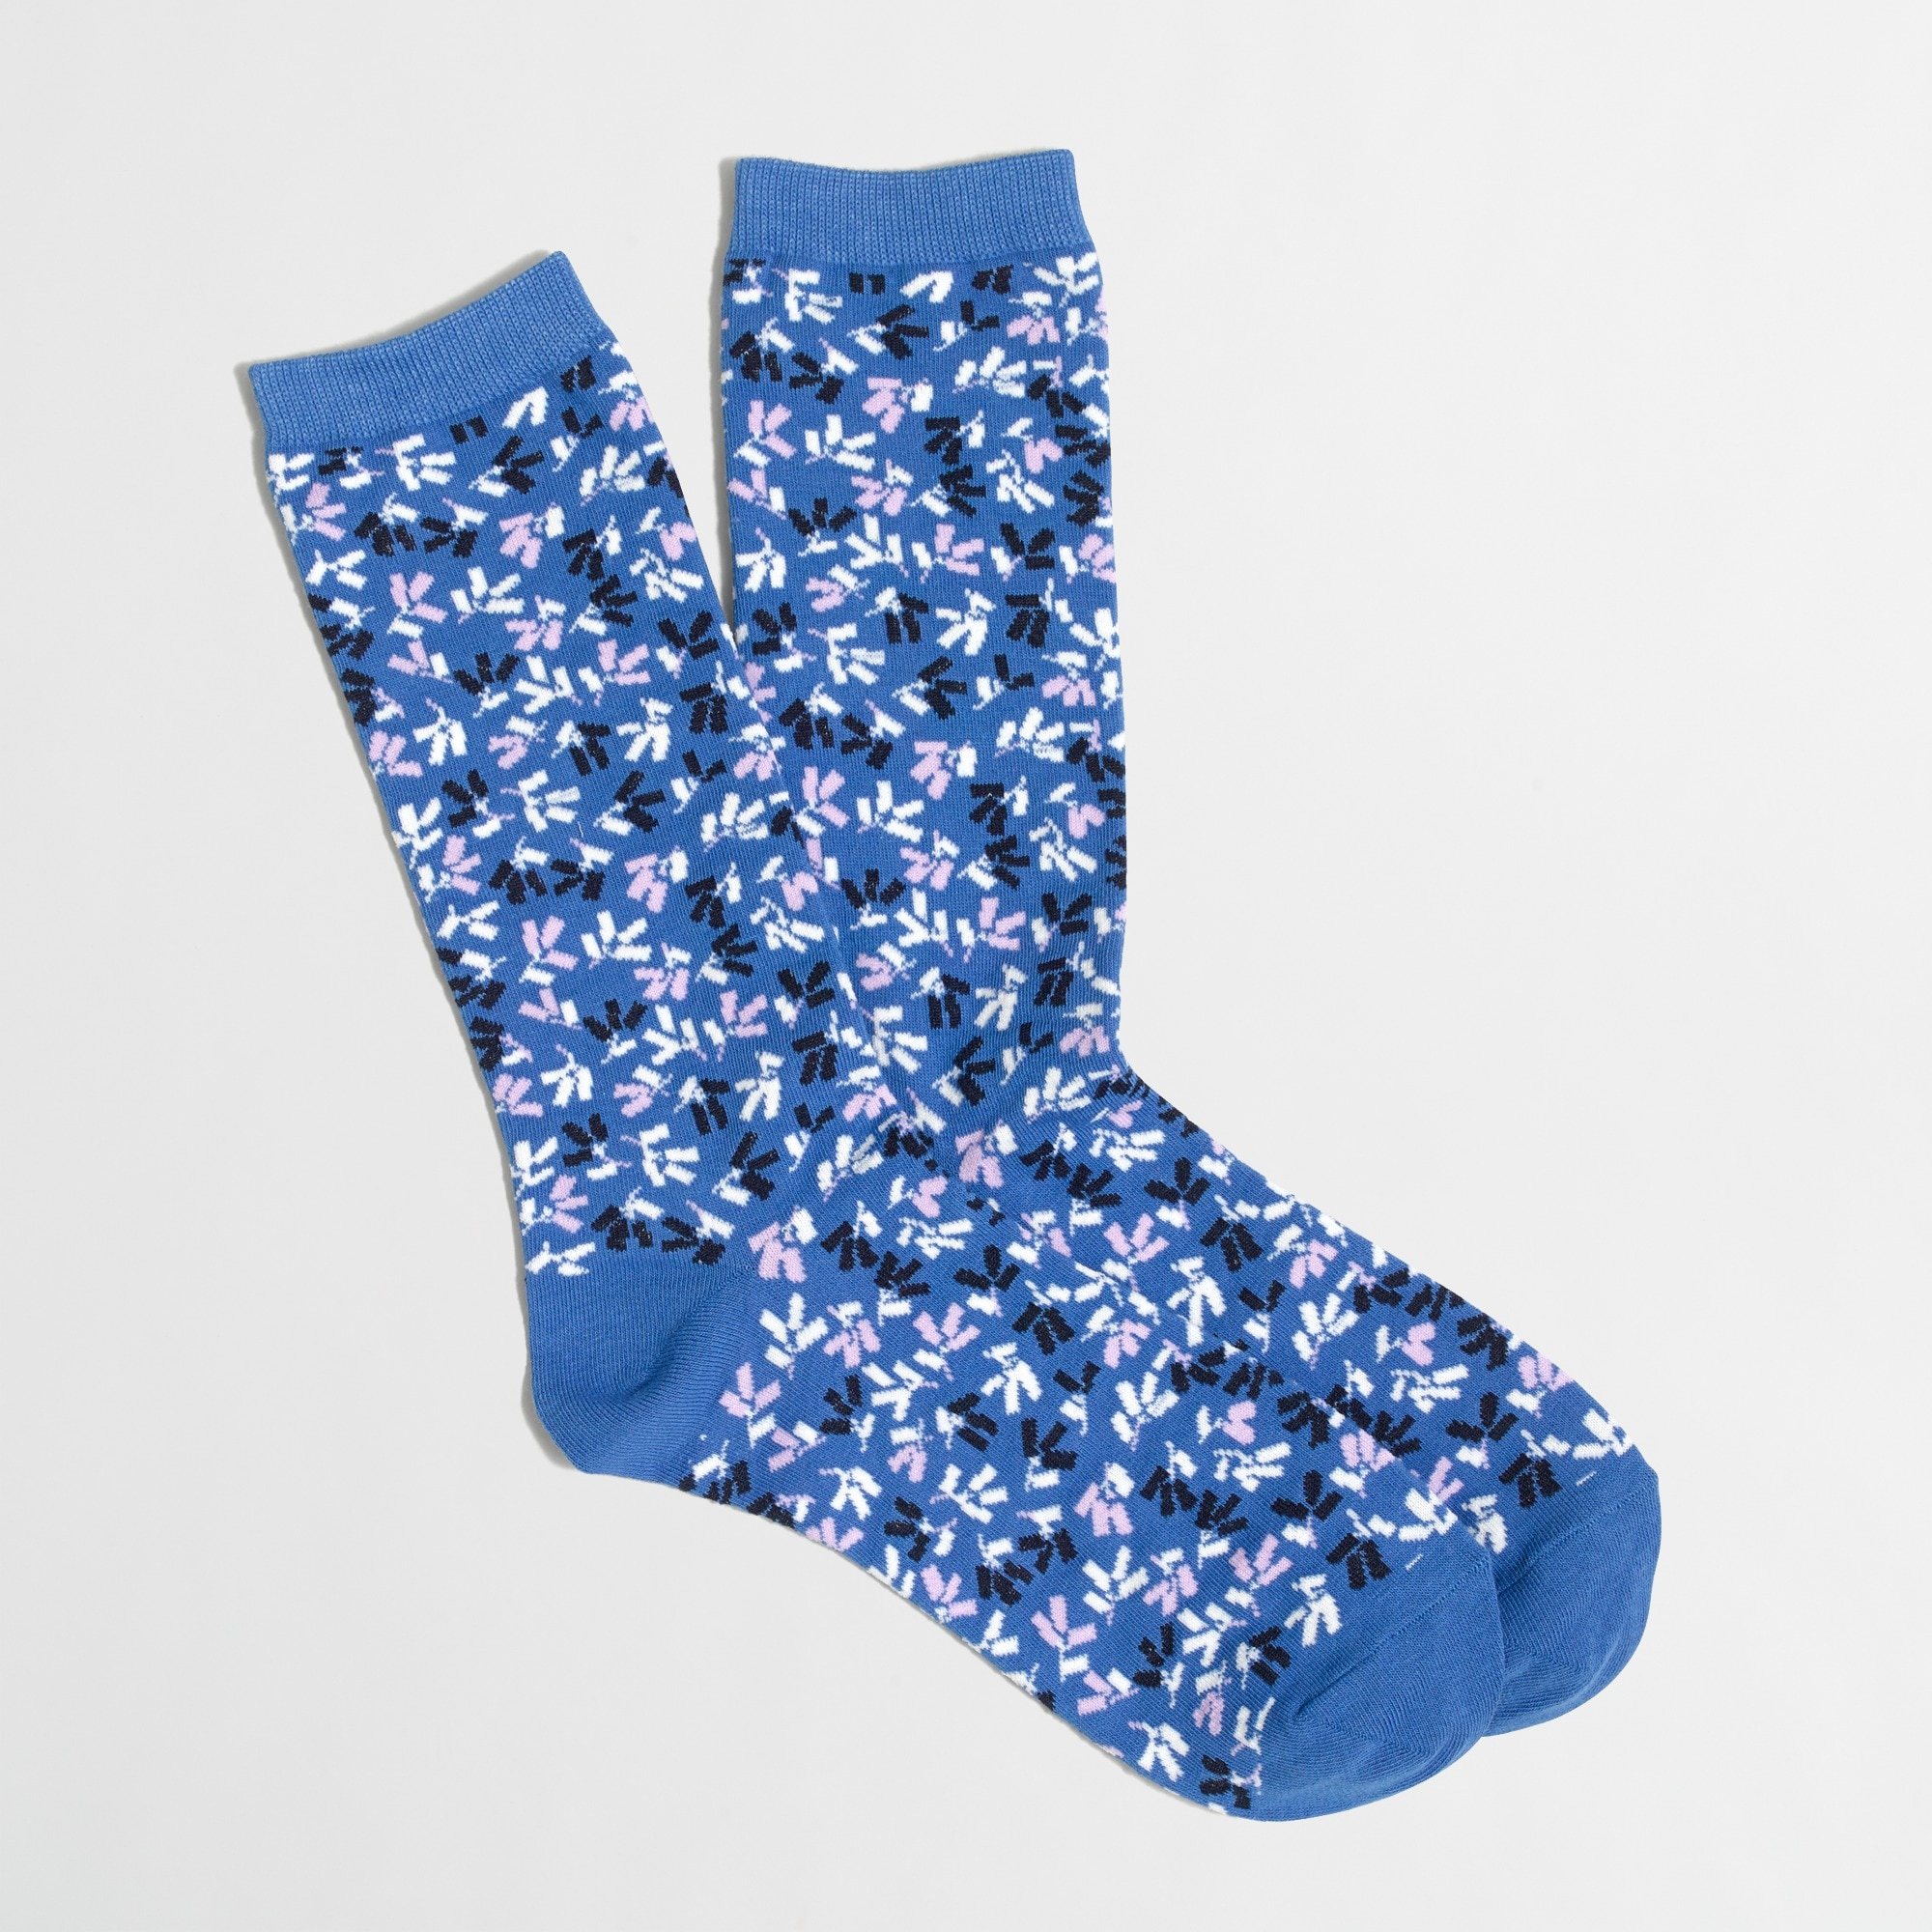 Image 1 for Firecracker trouser socks